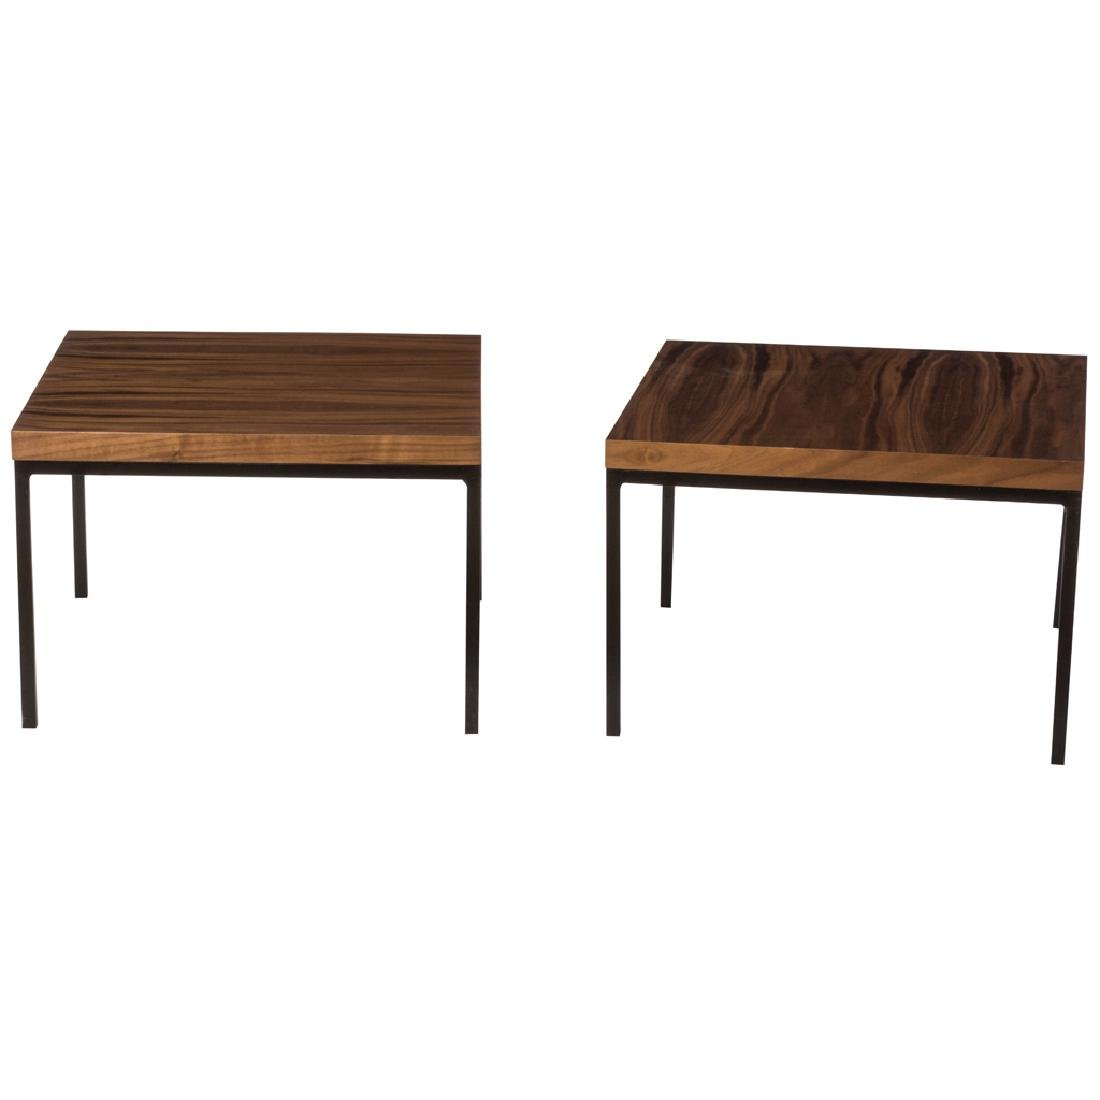 Mexican pair of black metal side tables with walnut